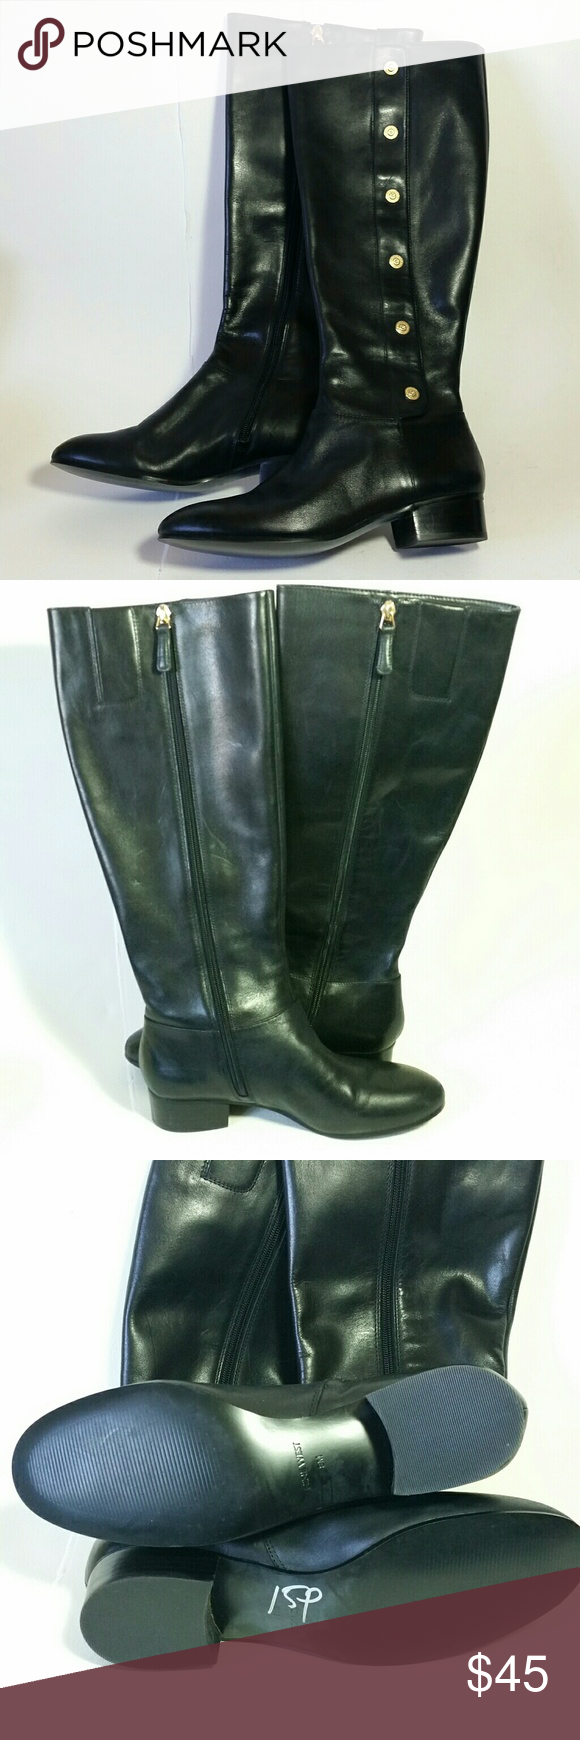 043ec3b2380 Nine West Oreyan Boots Leather Tall Riding Black 8 Beautiful tall leather  riding style boots. Oreyan style by Nine West. Black